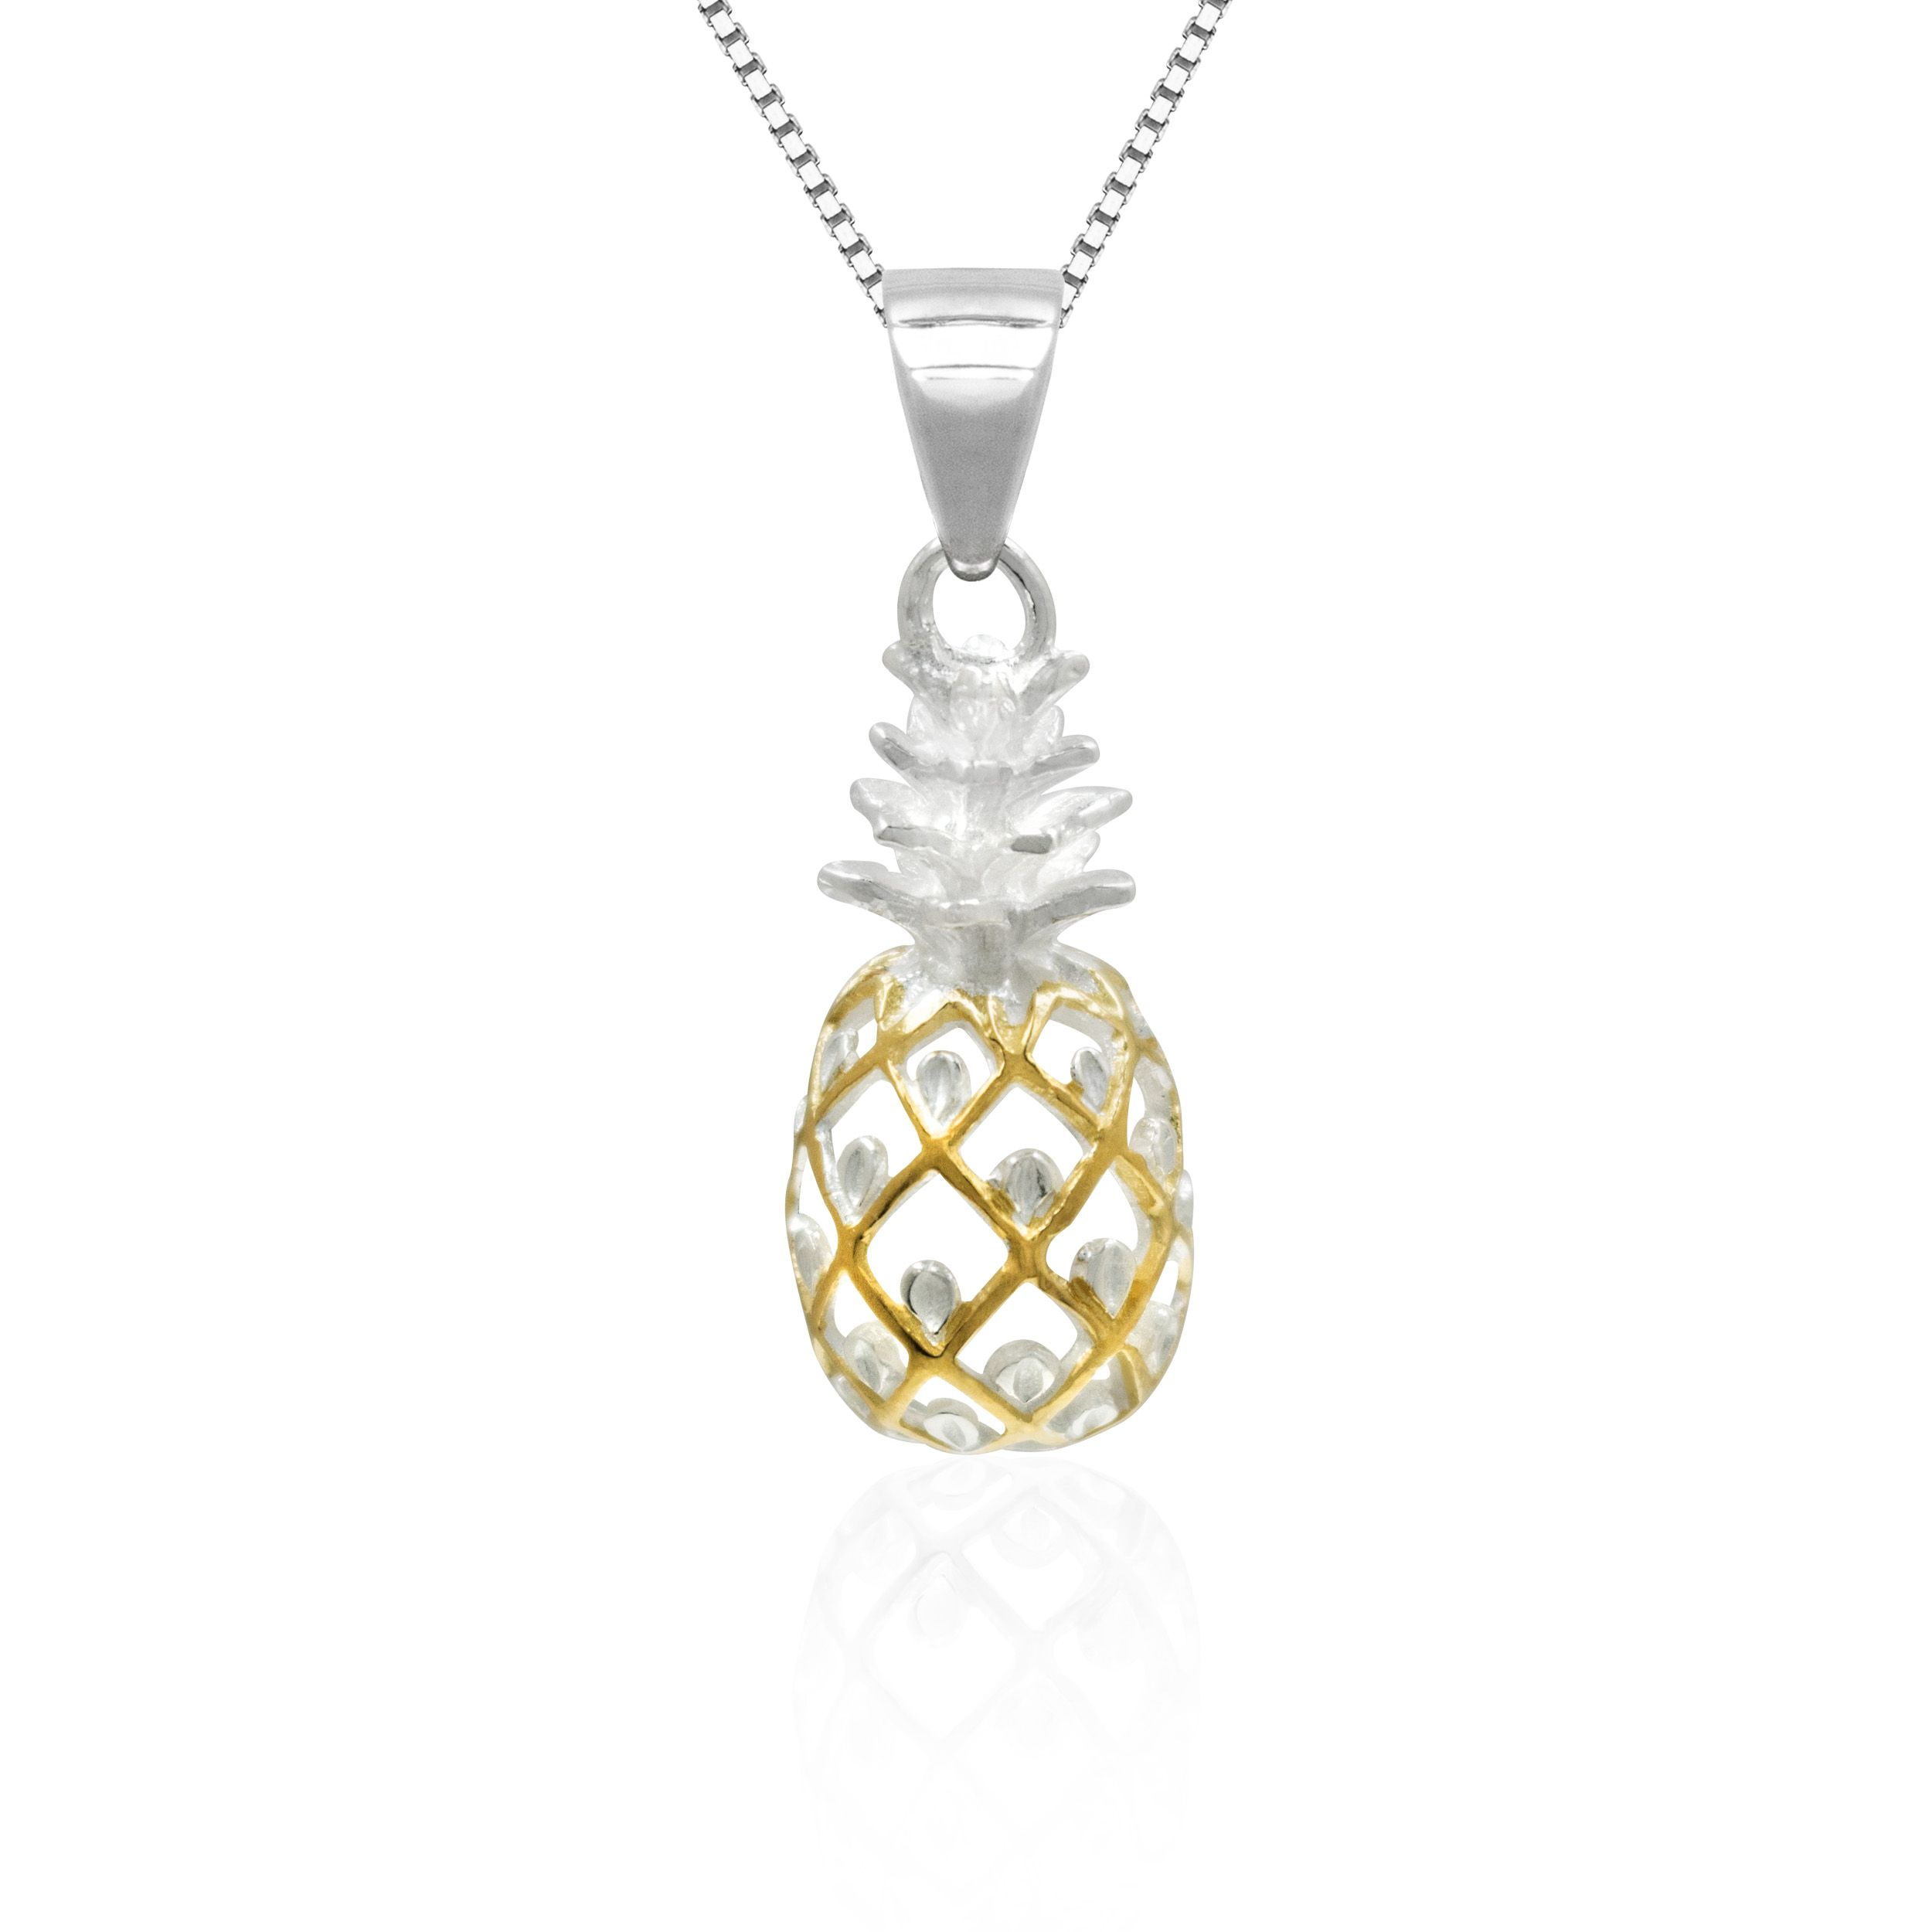 Sterling Silver Two Tone Gold Pineapple Necklace Pendant With Box Chain Accented With Yellow Gold 18 1 0mm Box C Pendant Necklace Pineapple Necklace Jewelry